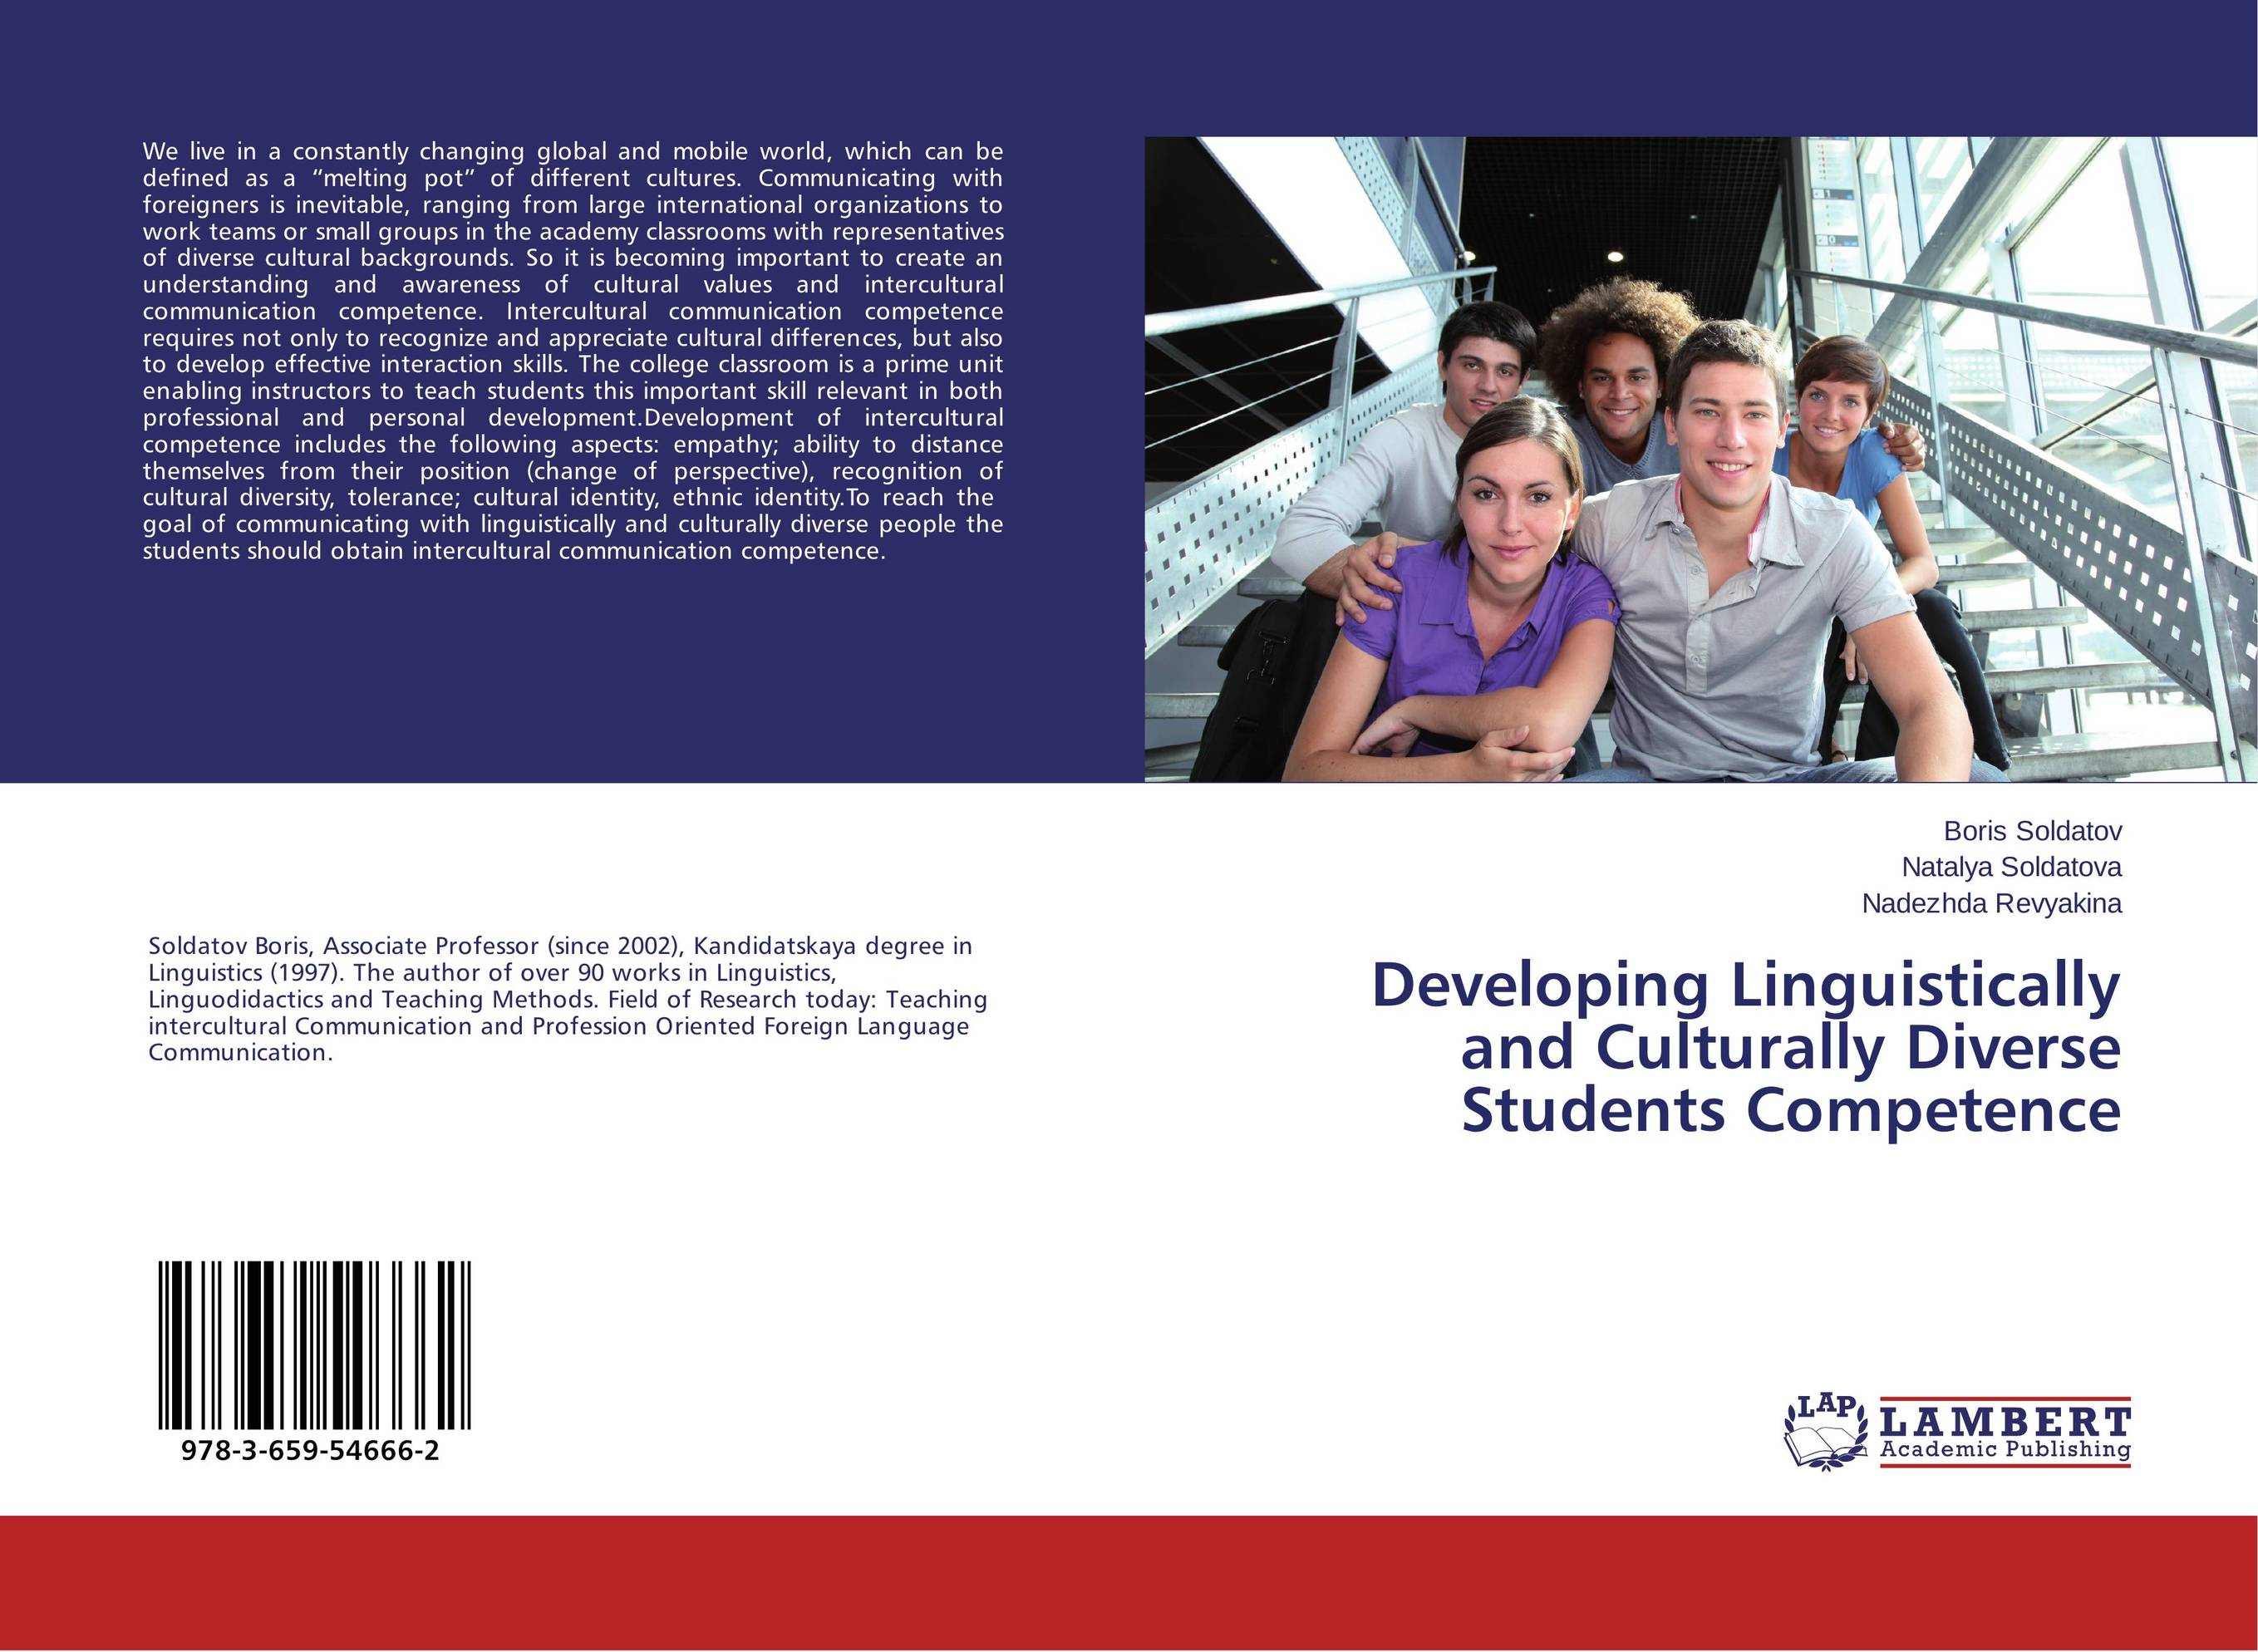 Developing Linguistically and Culturally Diverse Students Competence rethinking multicultaralism – cultural diversity